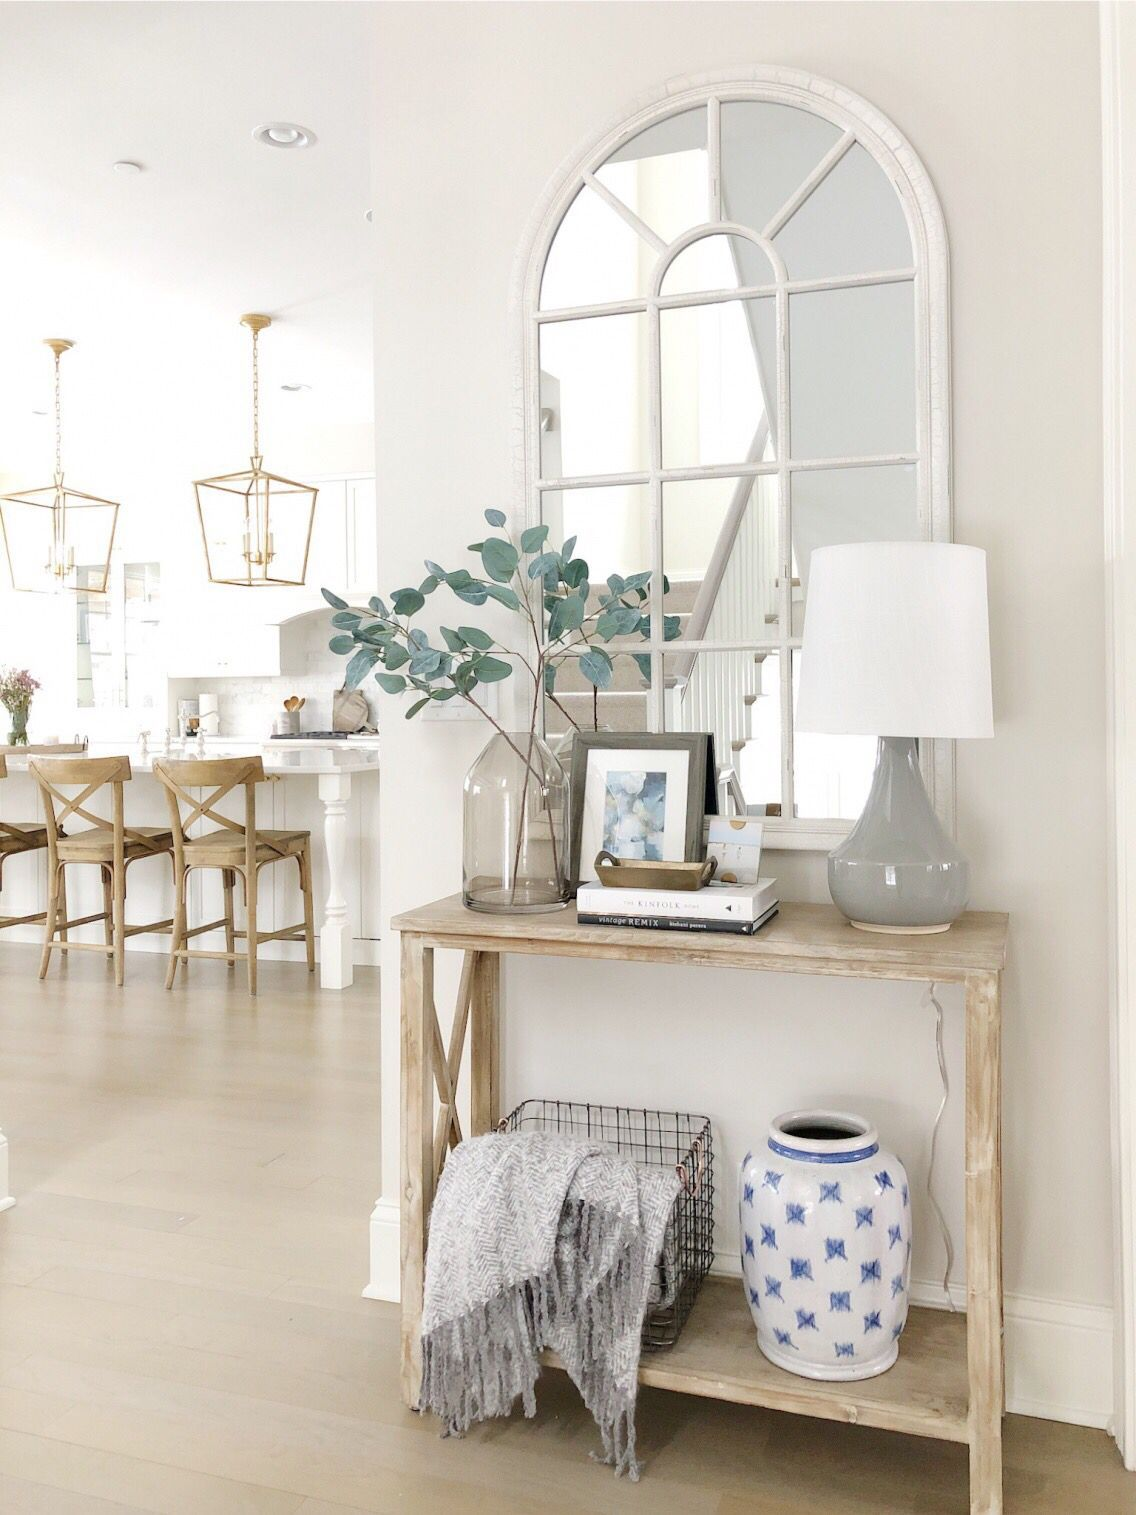 Entry Way Styling Benjamin Moore Classic Gray Wood Console Table Arched Mirror Neutral Decor Wood Stools Brass K Entry Decor Home Home Decor Accessories